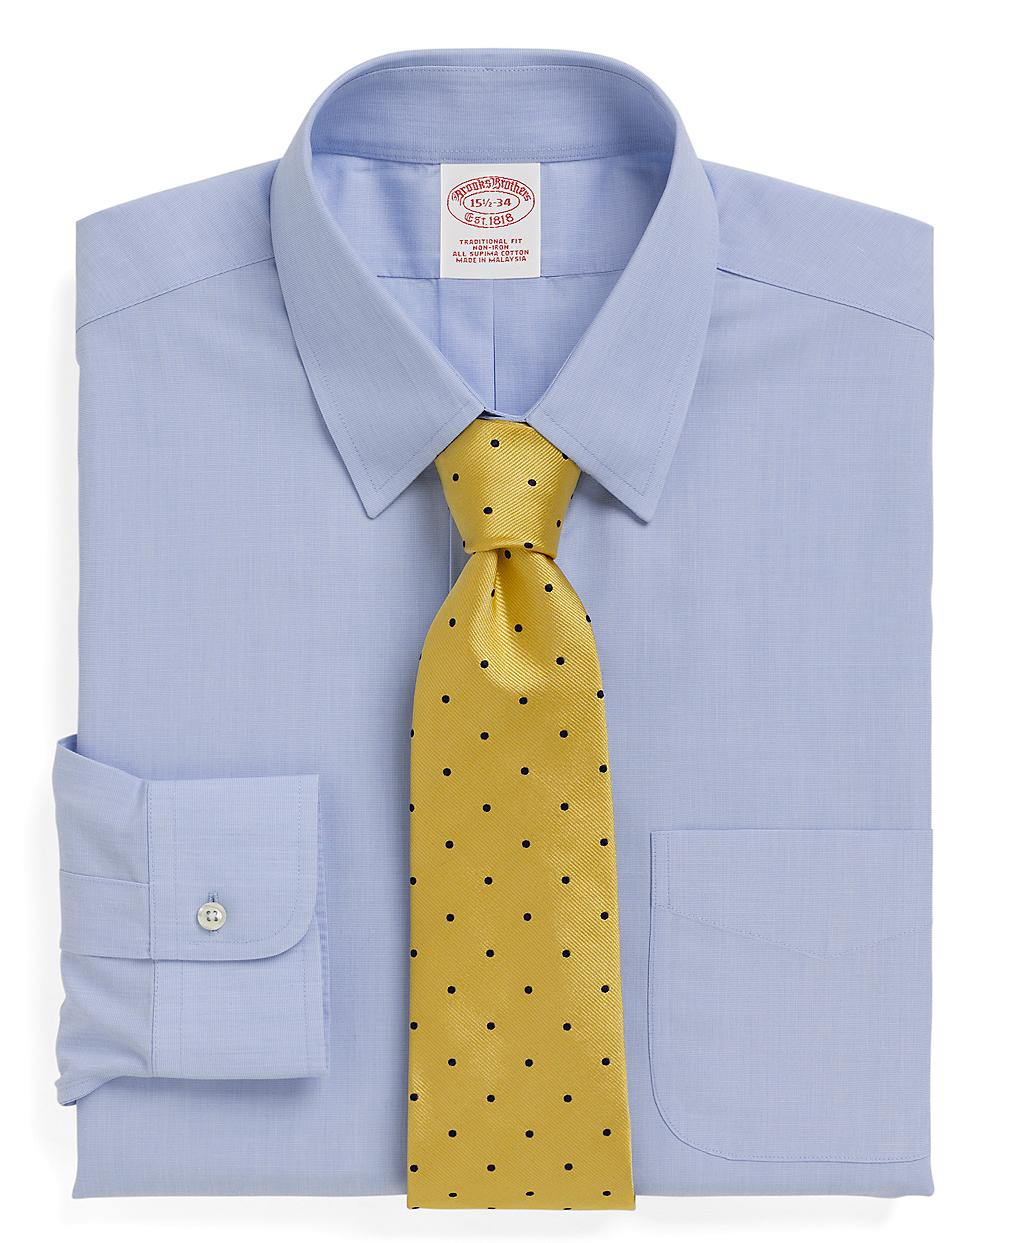 Brooks brothers non iron traditional fit tab collar dress for Brooks brothers non iron shirts review